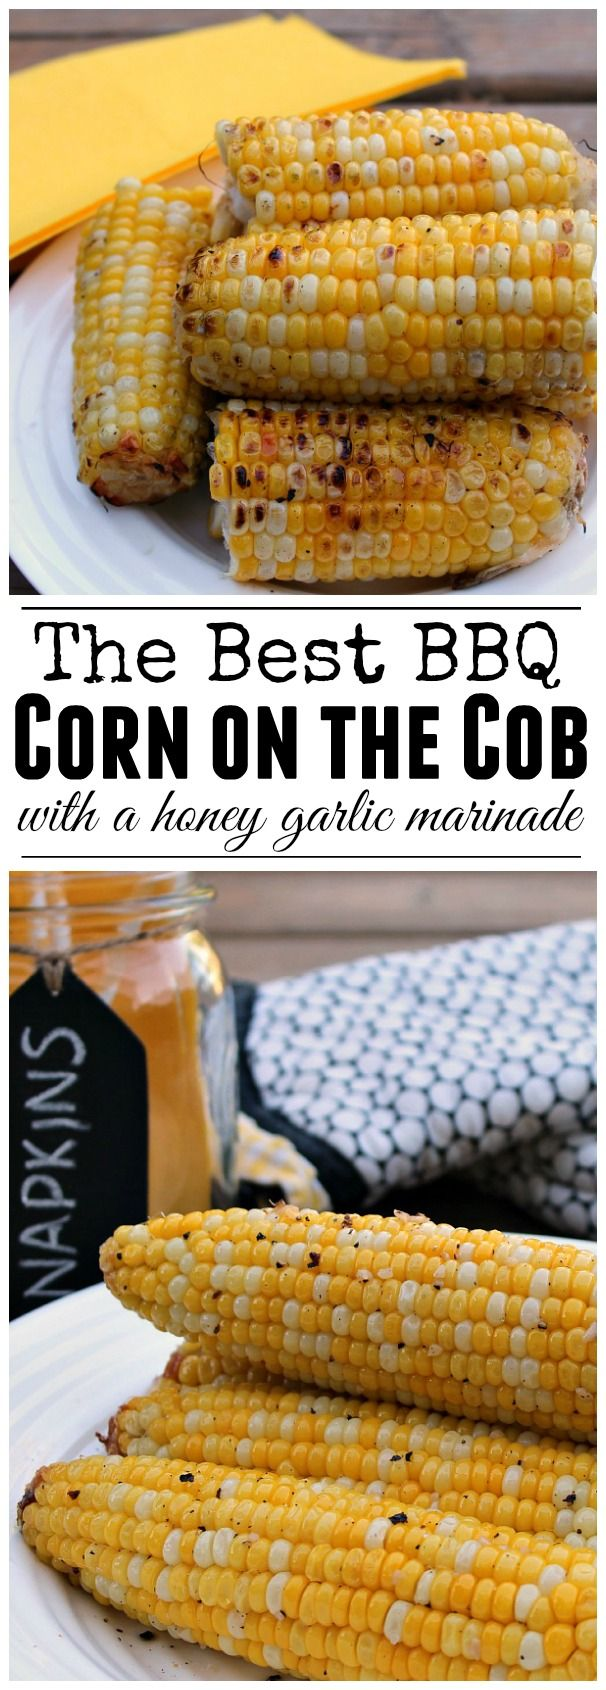 Delicious BBQ corn on the cob with a honey garlic marinade. A must have for summer BBQs!